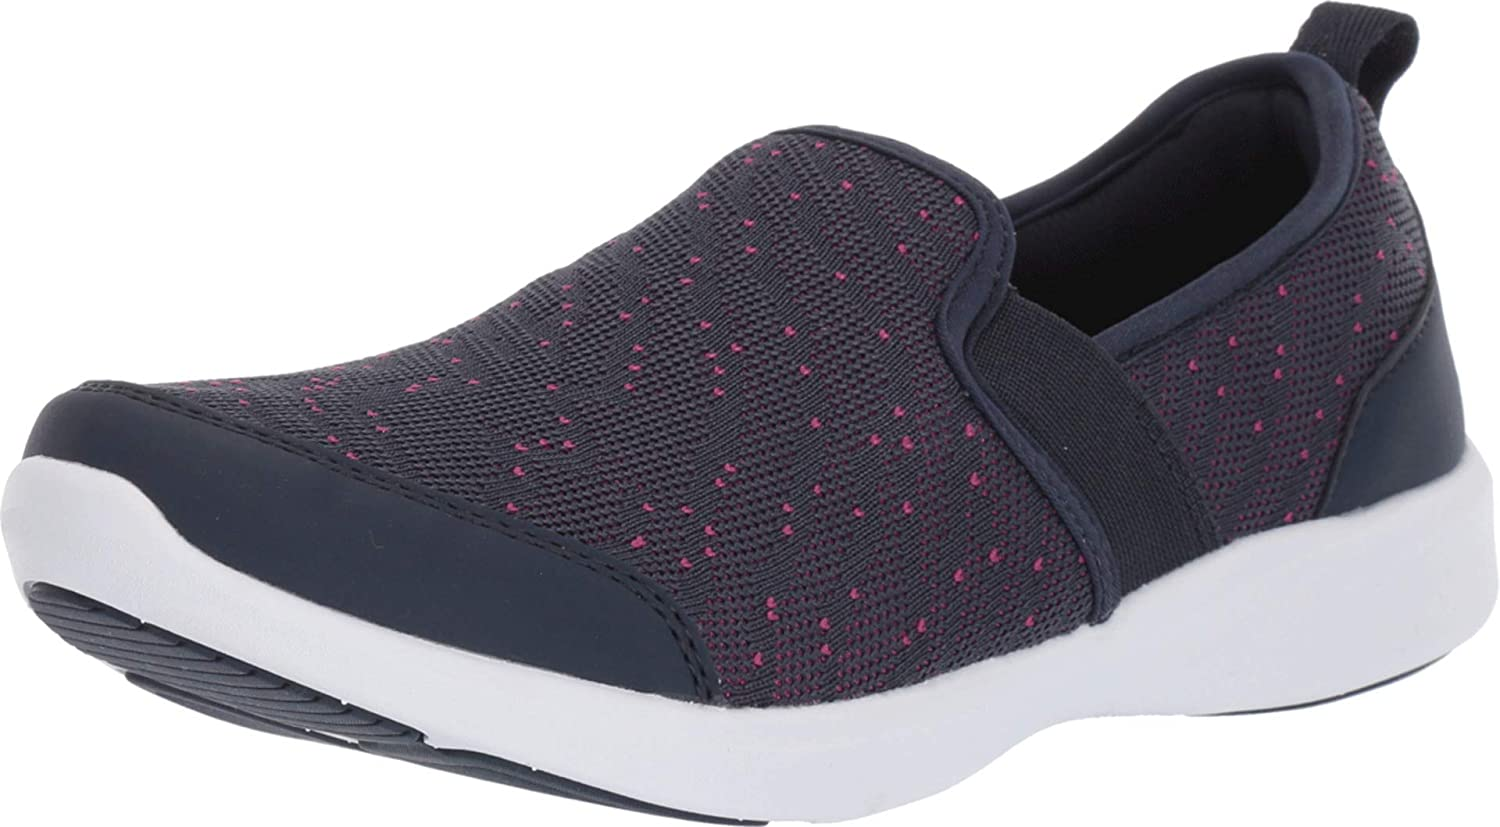 Vionic Women's Sky Roza Slip-on Sneakers - Ladies Walking Shoes with Concealed Orthotic Arch Support